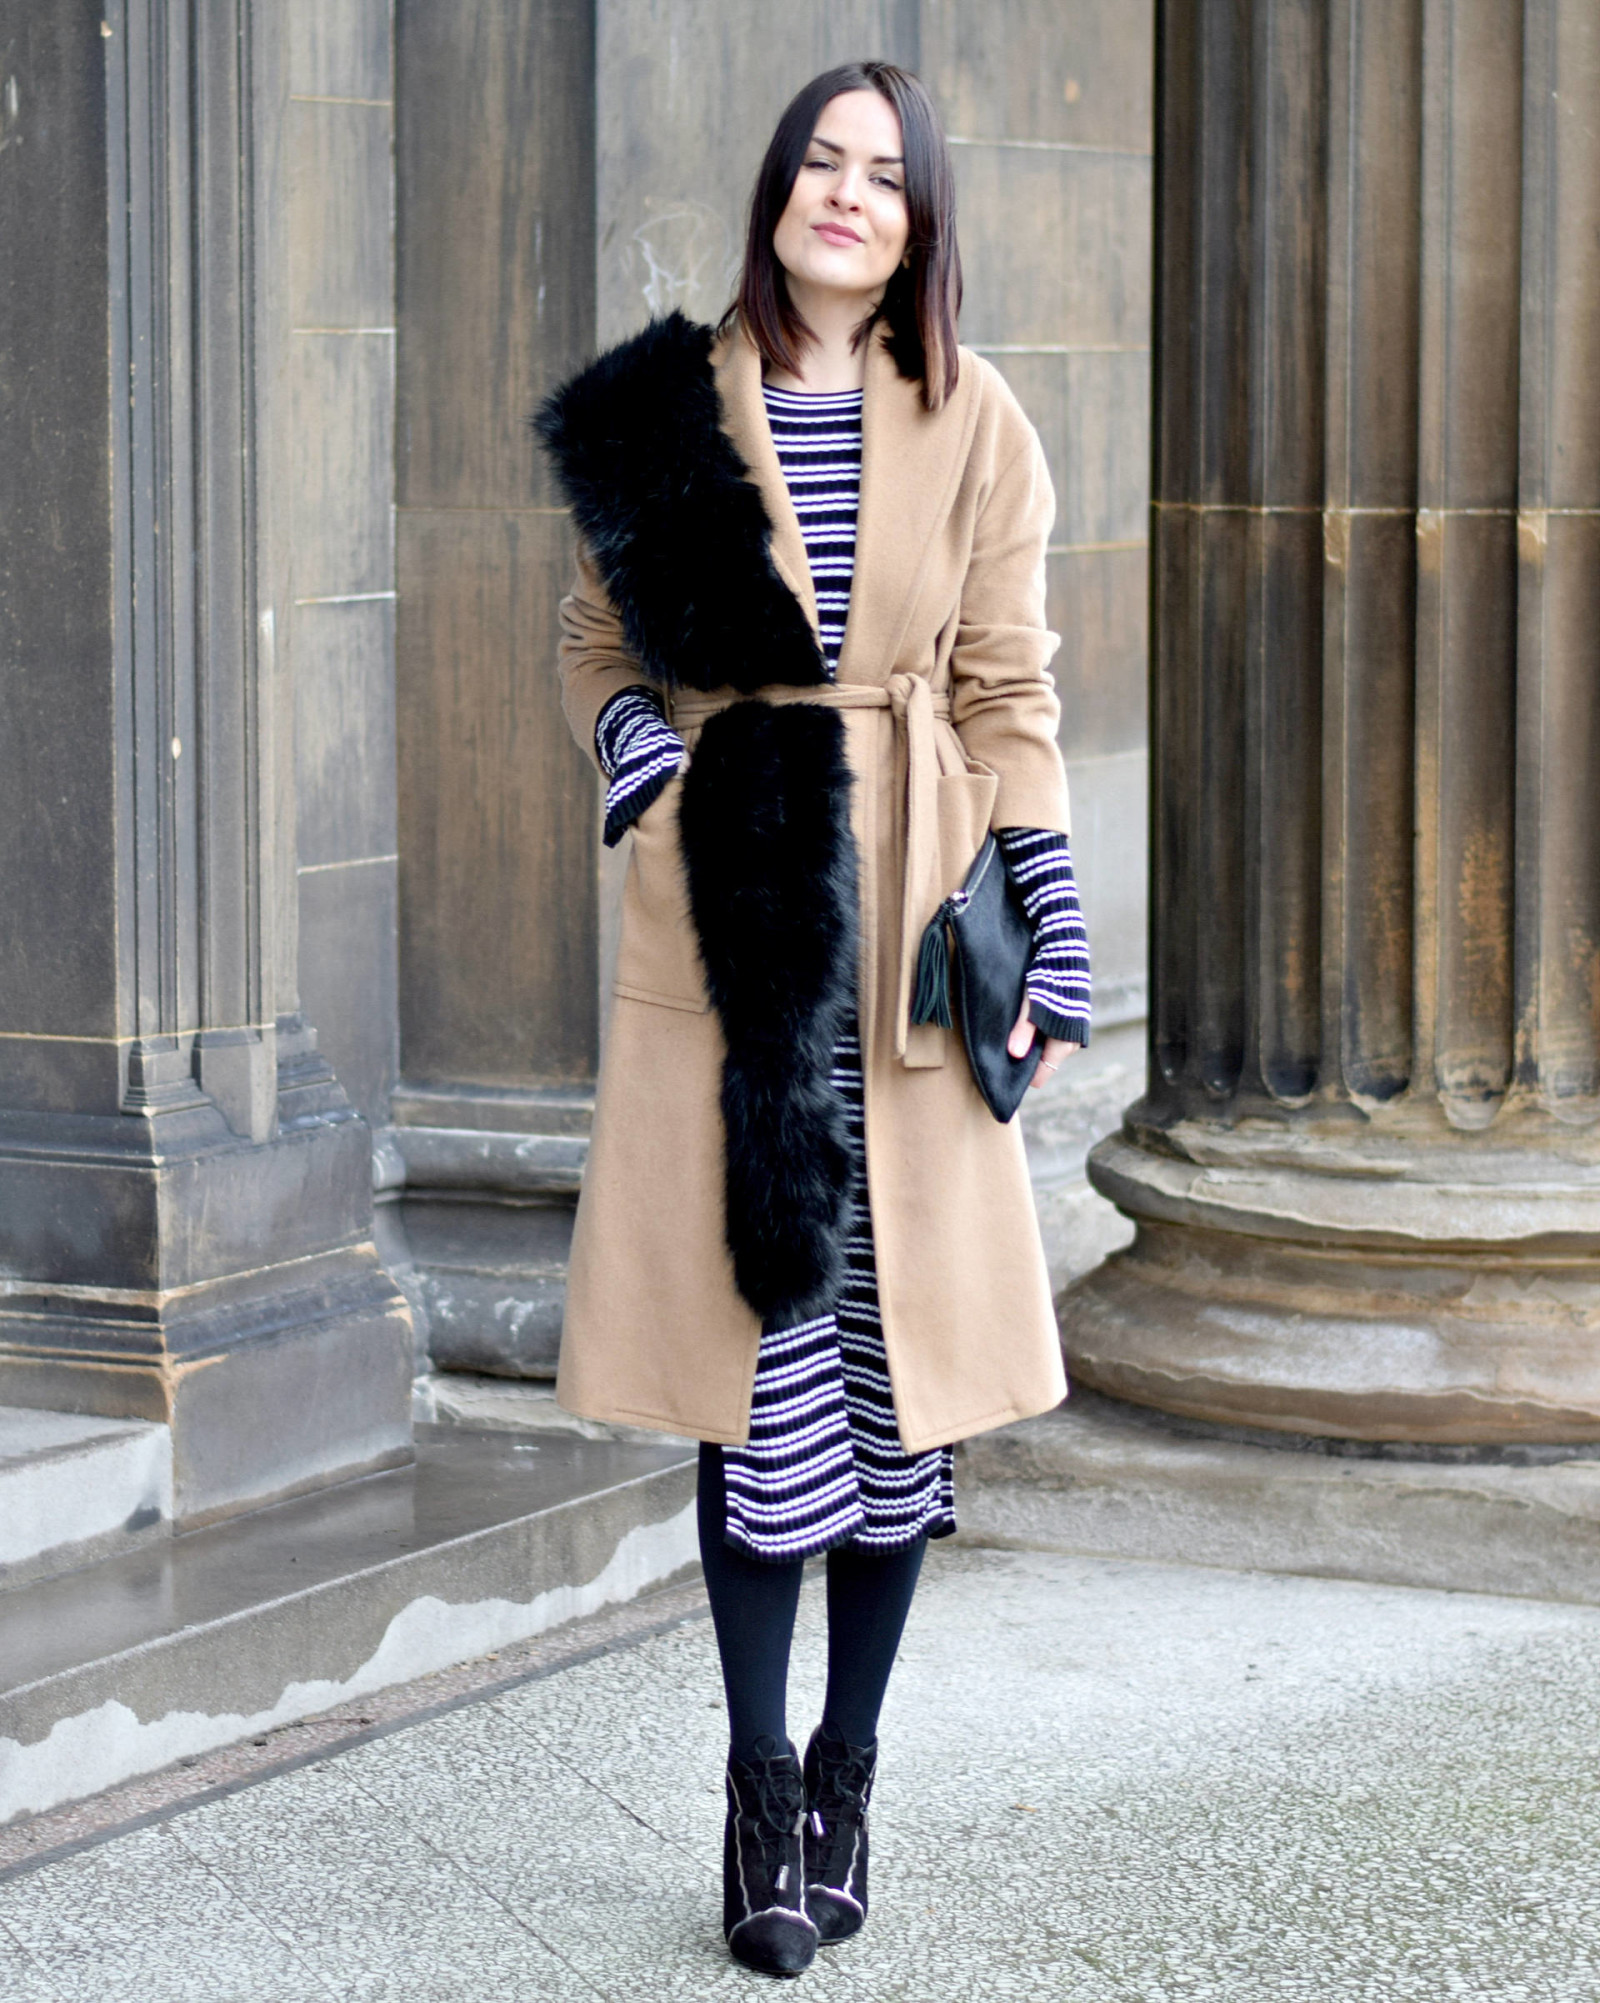 Striped H&M Dress and Camel Coat - LAFOTKA Fashion BLogger1